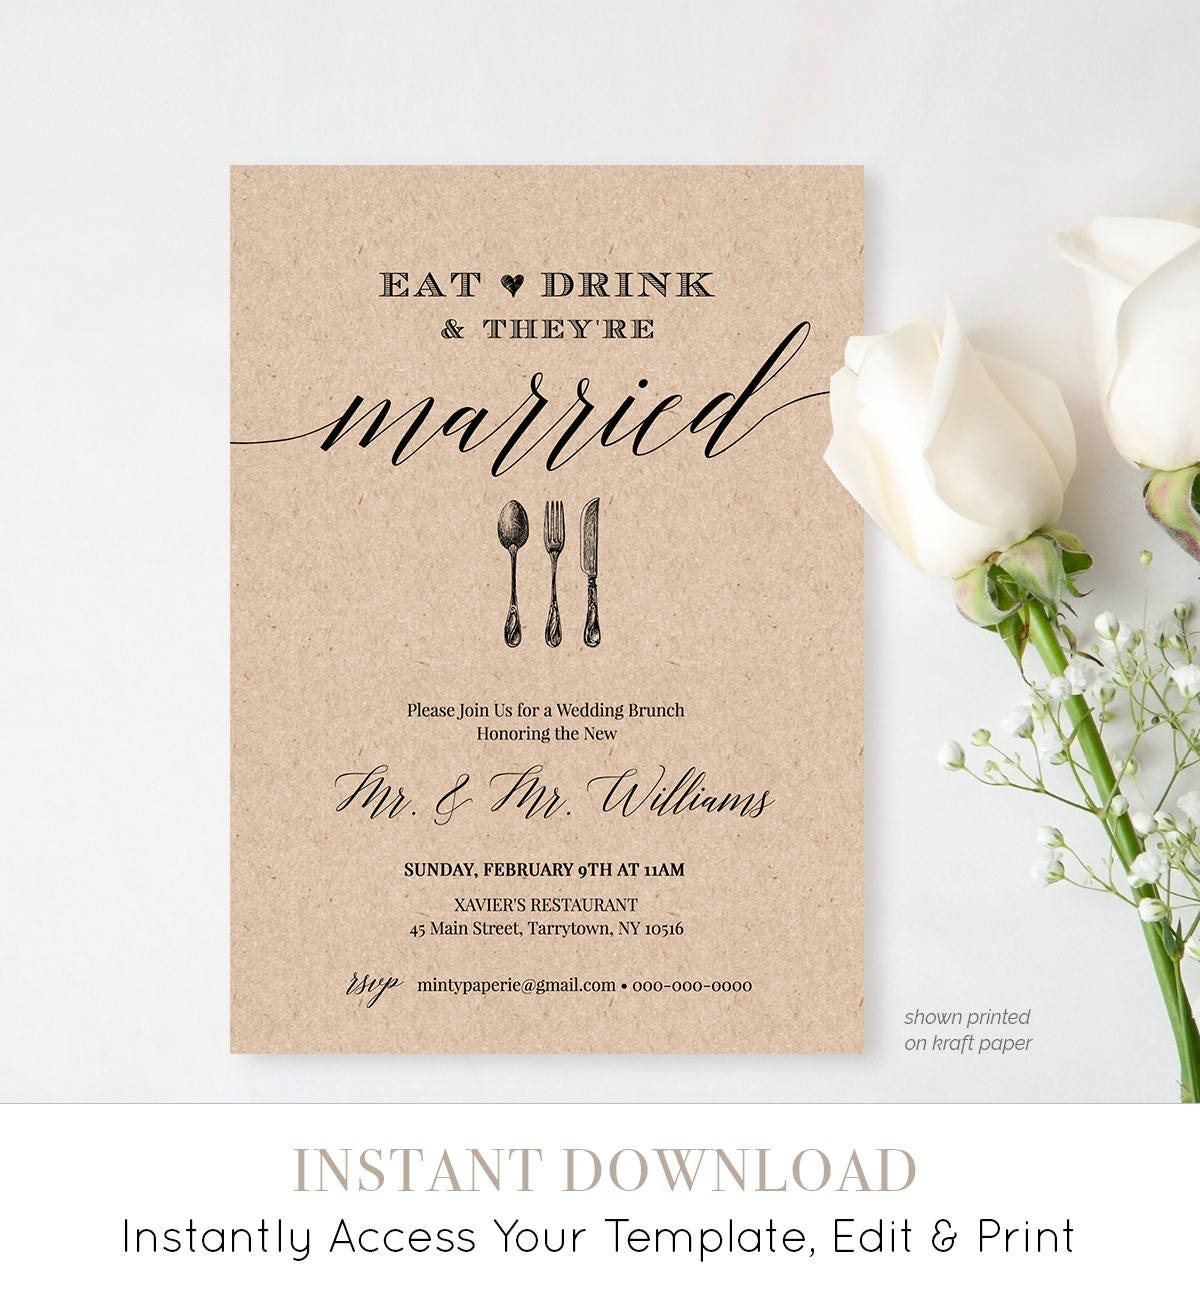 Awesome Post Wedding Brunch Invitation Template, Printable Brunch Invite, Eat Drink  Married, Instant Download, Editable Template, Digital #NC 102BR